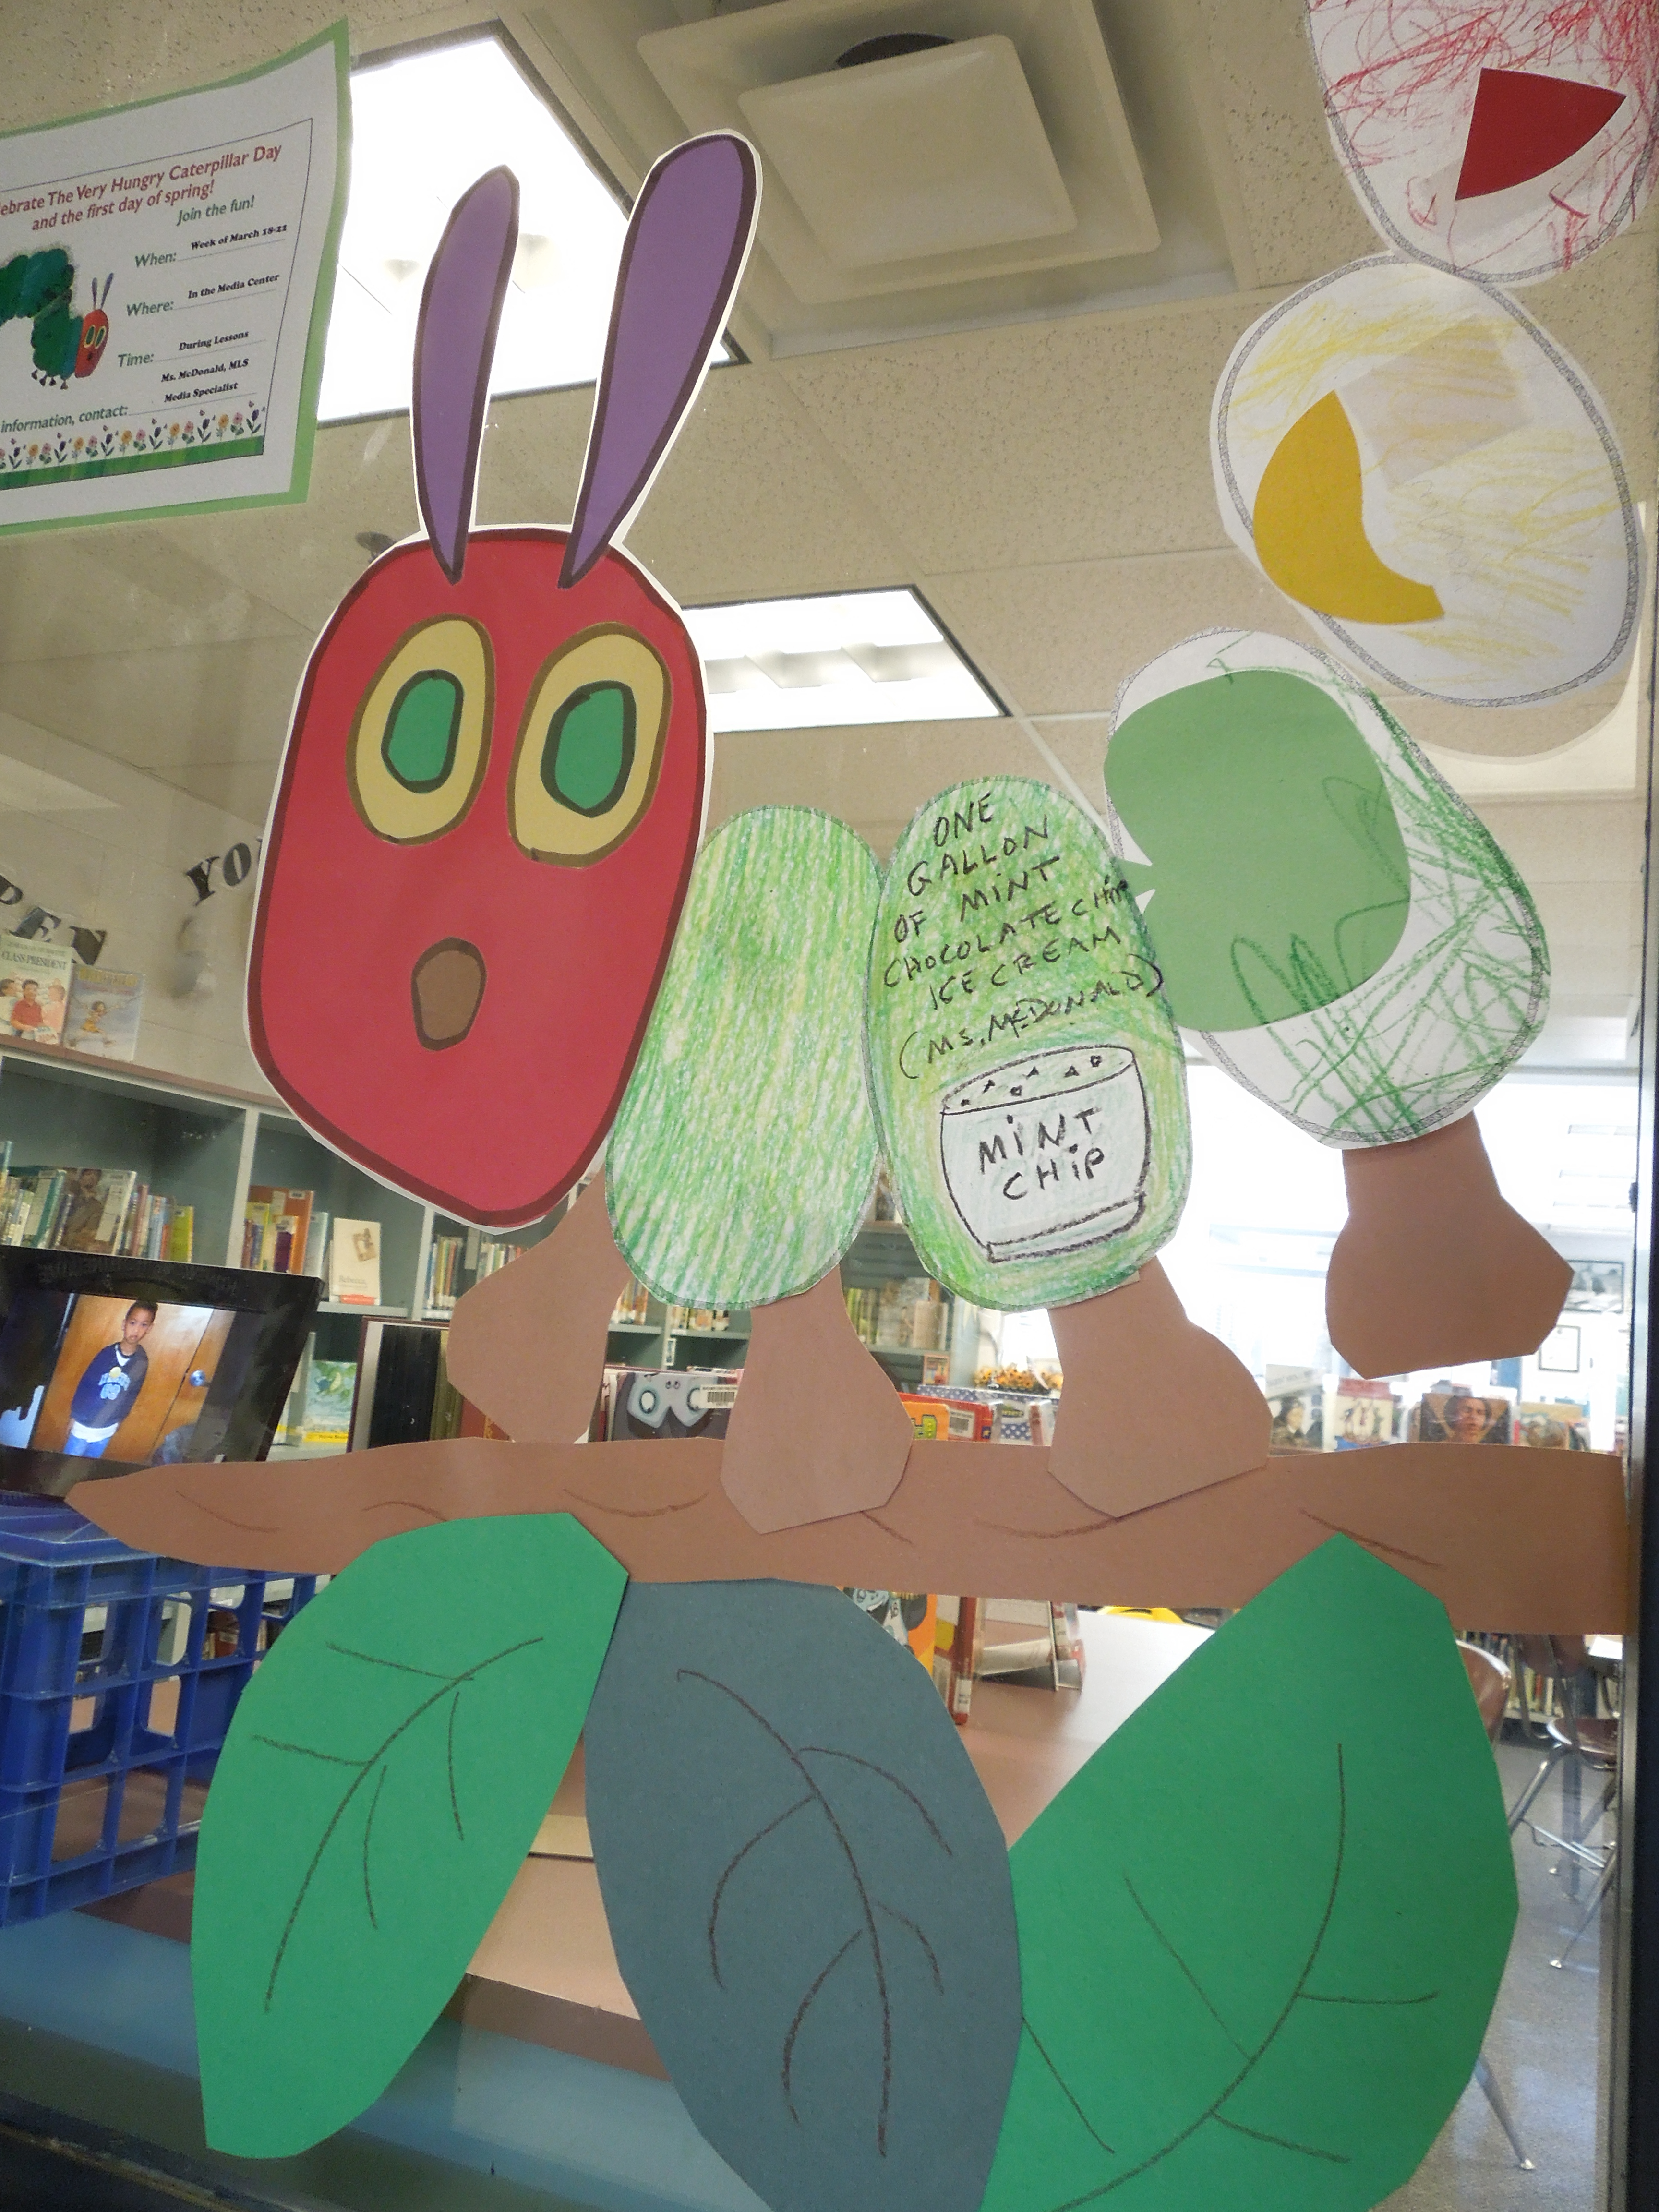 The Very Hungry Caterpillar Day March 20th